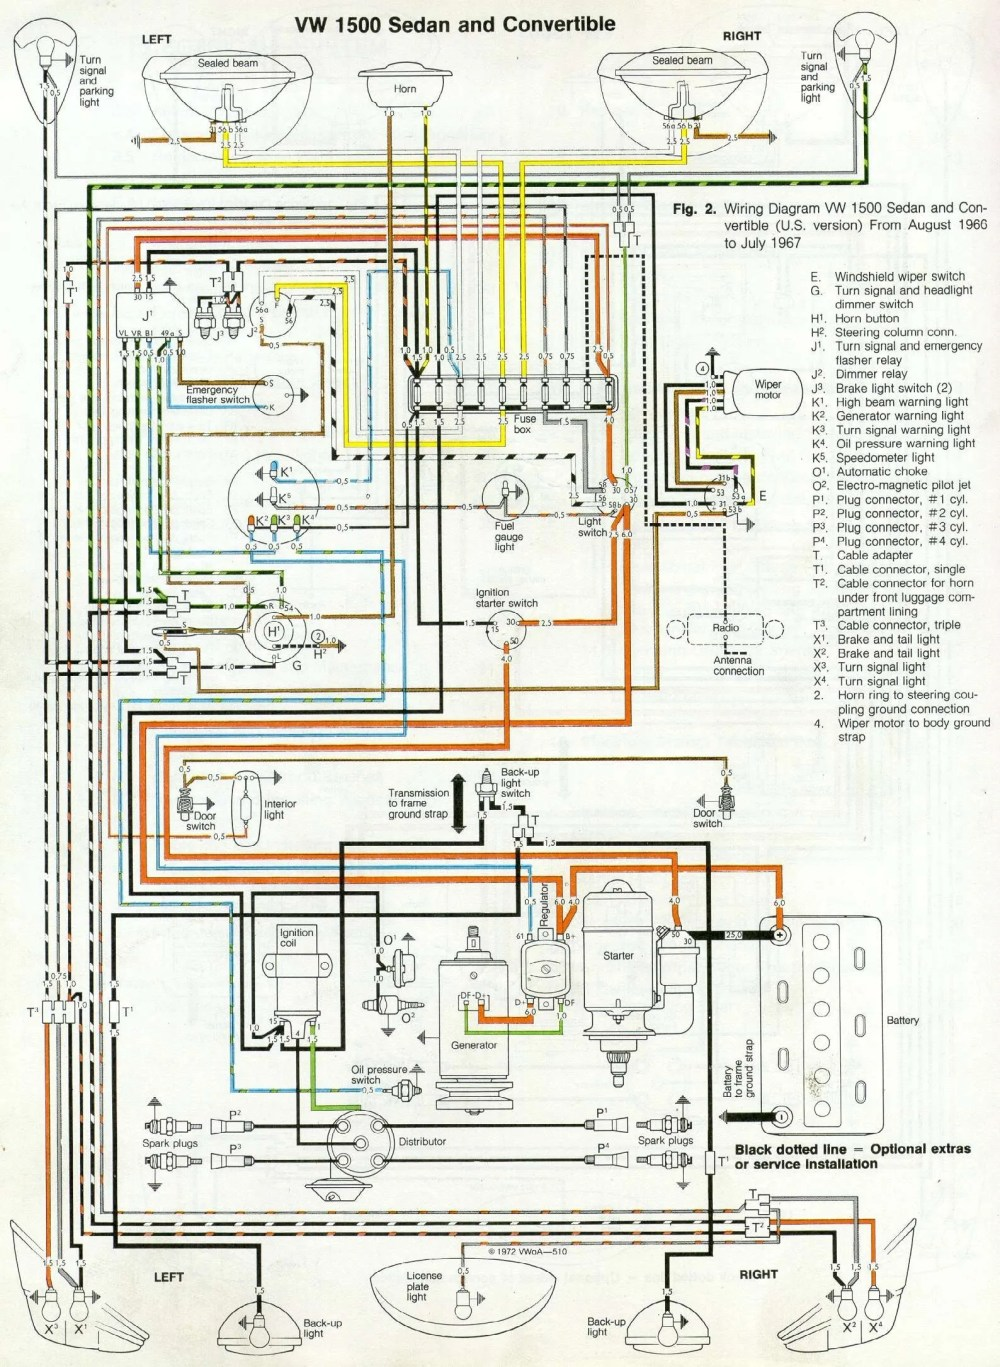 medium resolution of 67 beetle wiring diagram u s version 1967 vw beetle 1967 vw bug wiring diagram wiring diagram 1967 vw bug